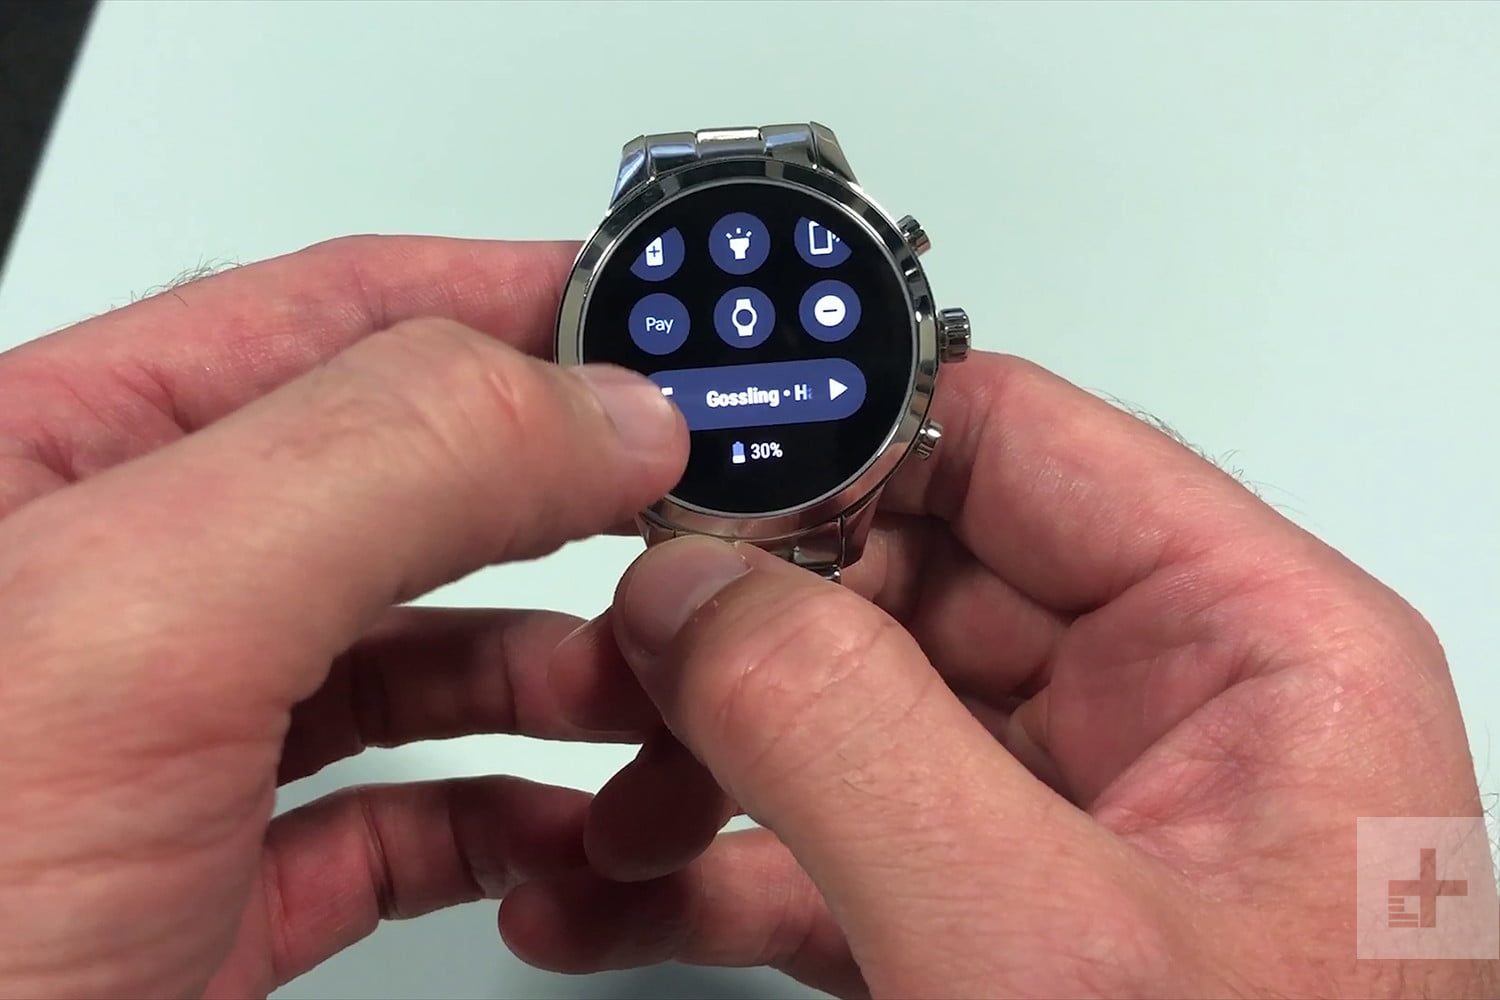 511ea19bc Andy Boxall/Digital Trends. There's a brand-new way to interact with  Google's Wear OS smartwatches ...